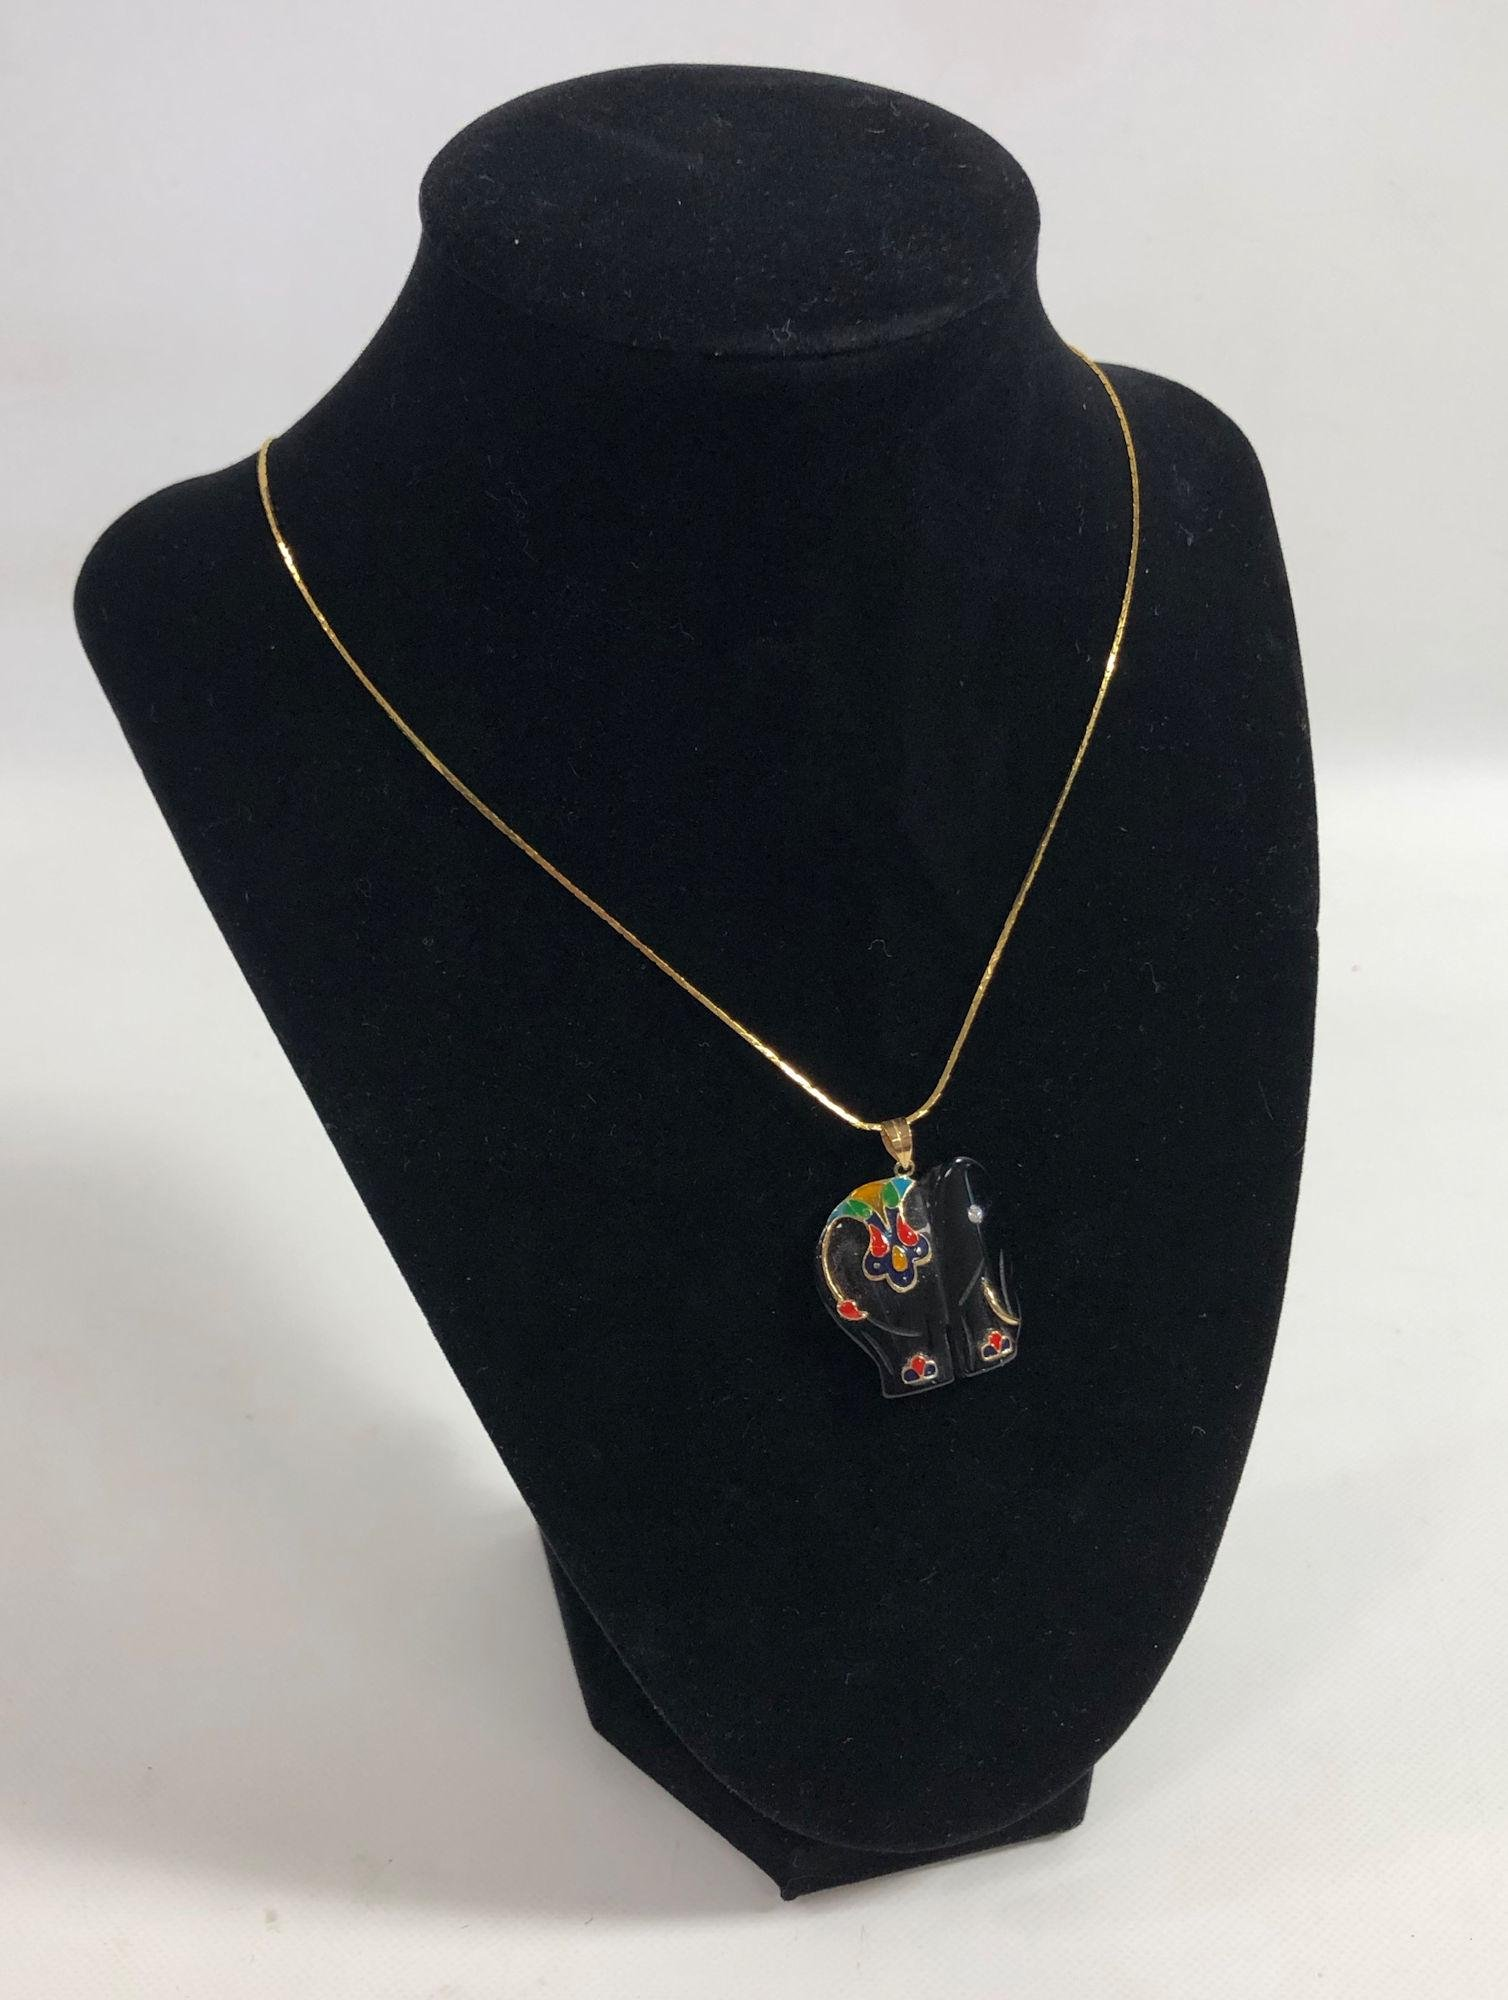 FASHION NECKLACE ~ GOLD TONE CHAIN FEATURING ONYX